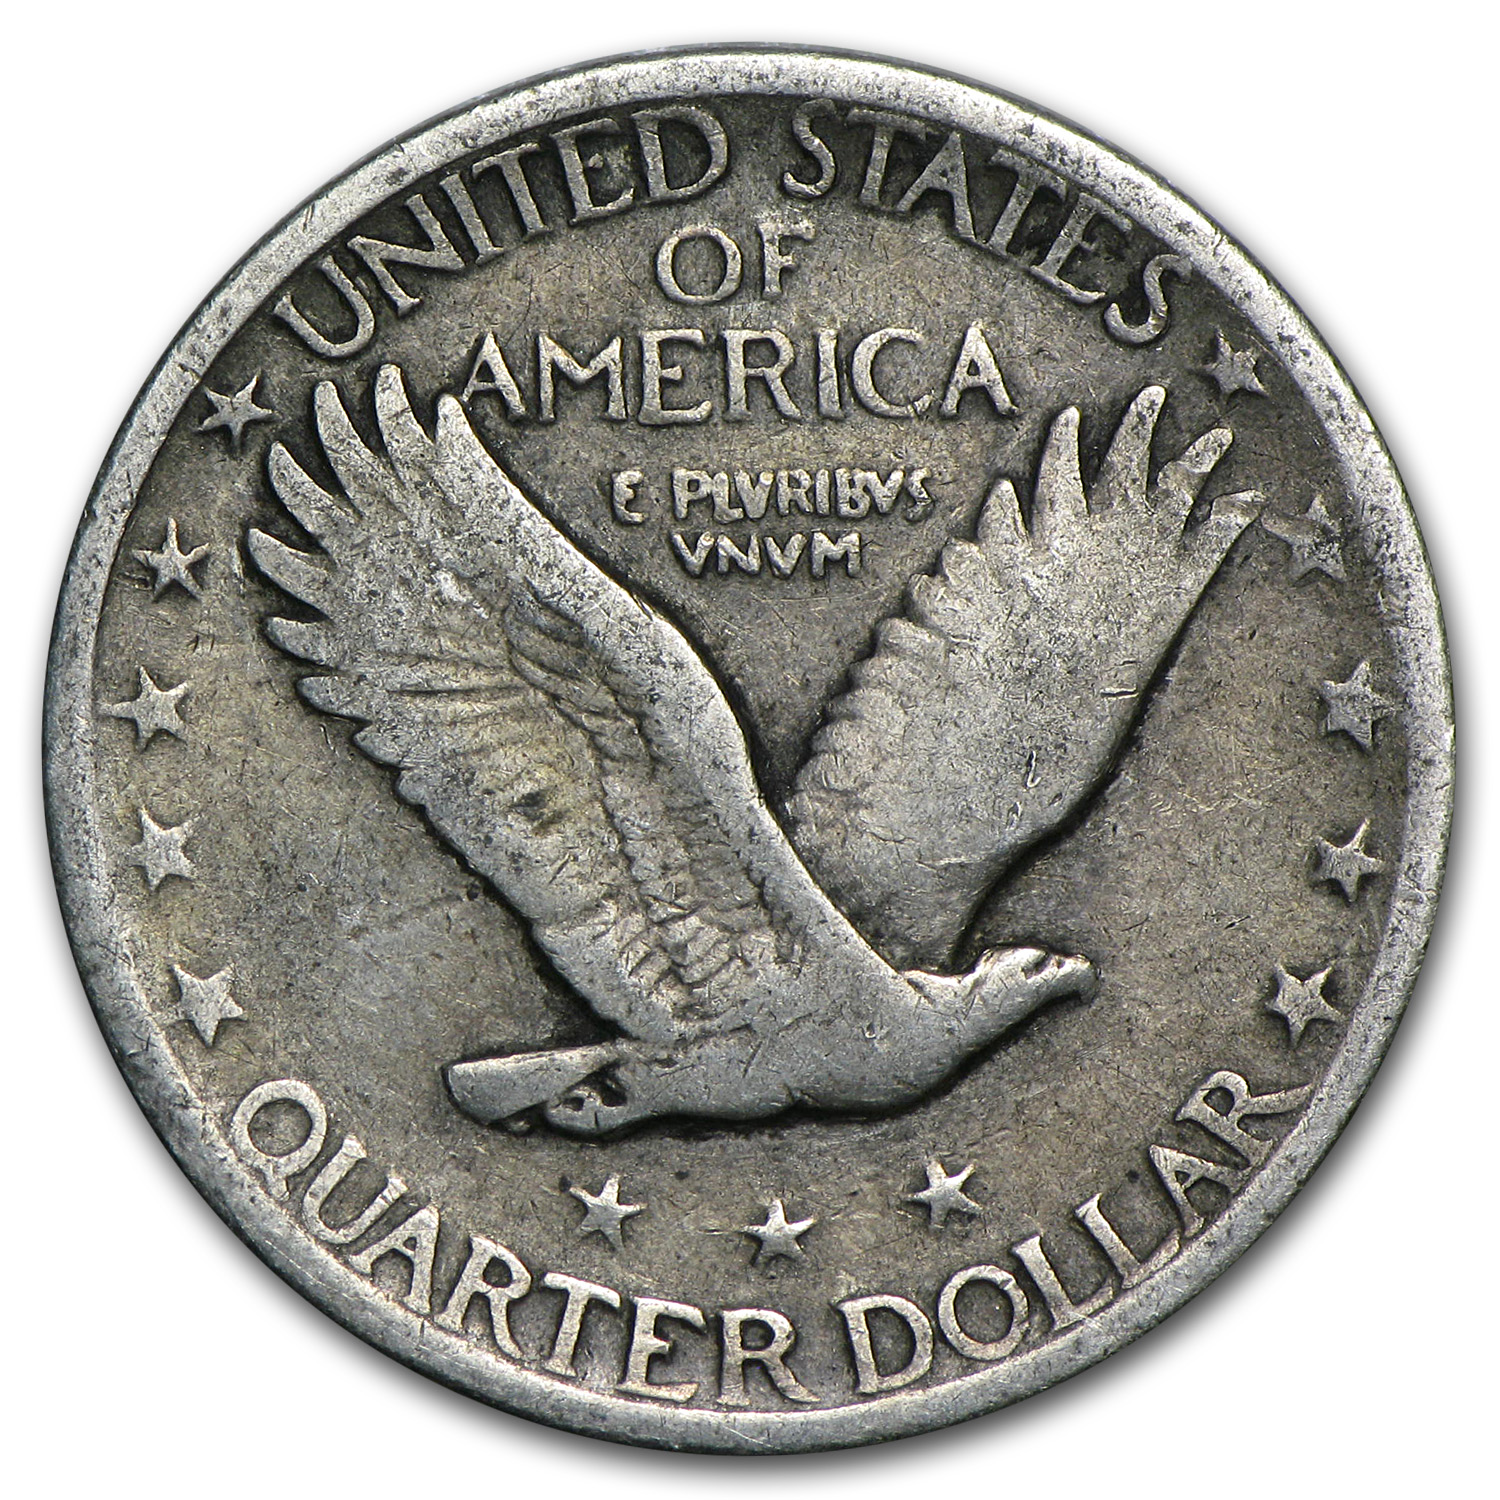 1921 Standing Liberty Quarter - Partial Date - Very Good